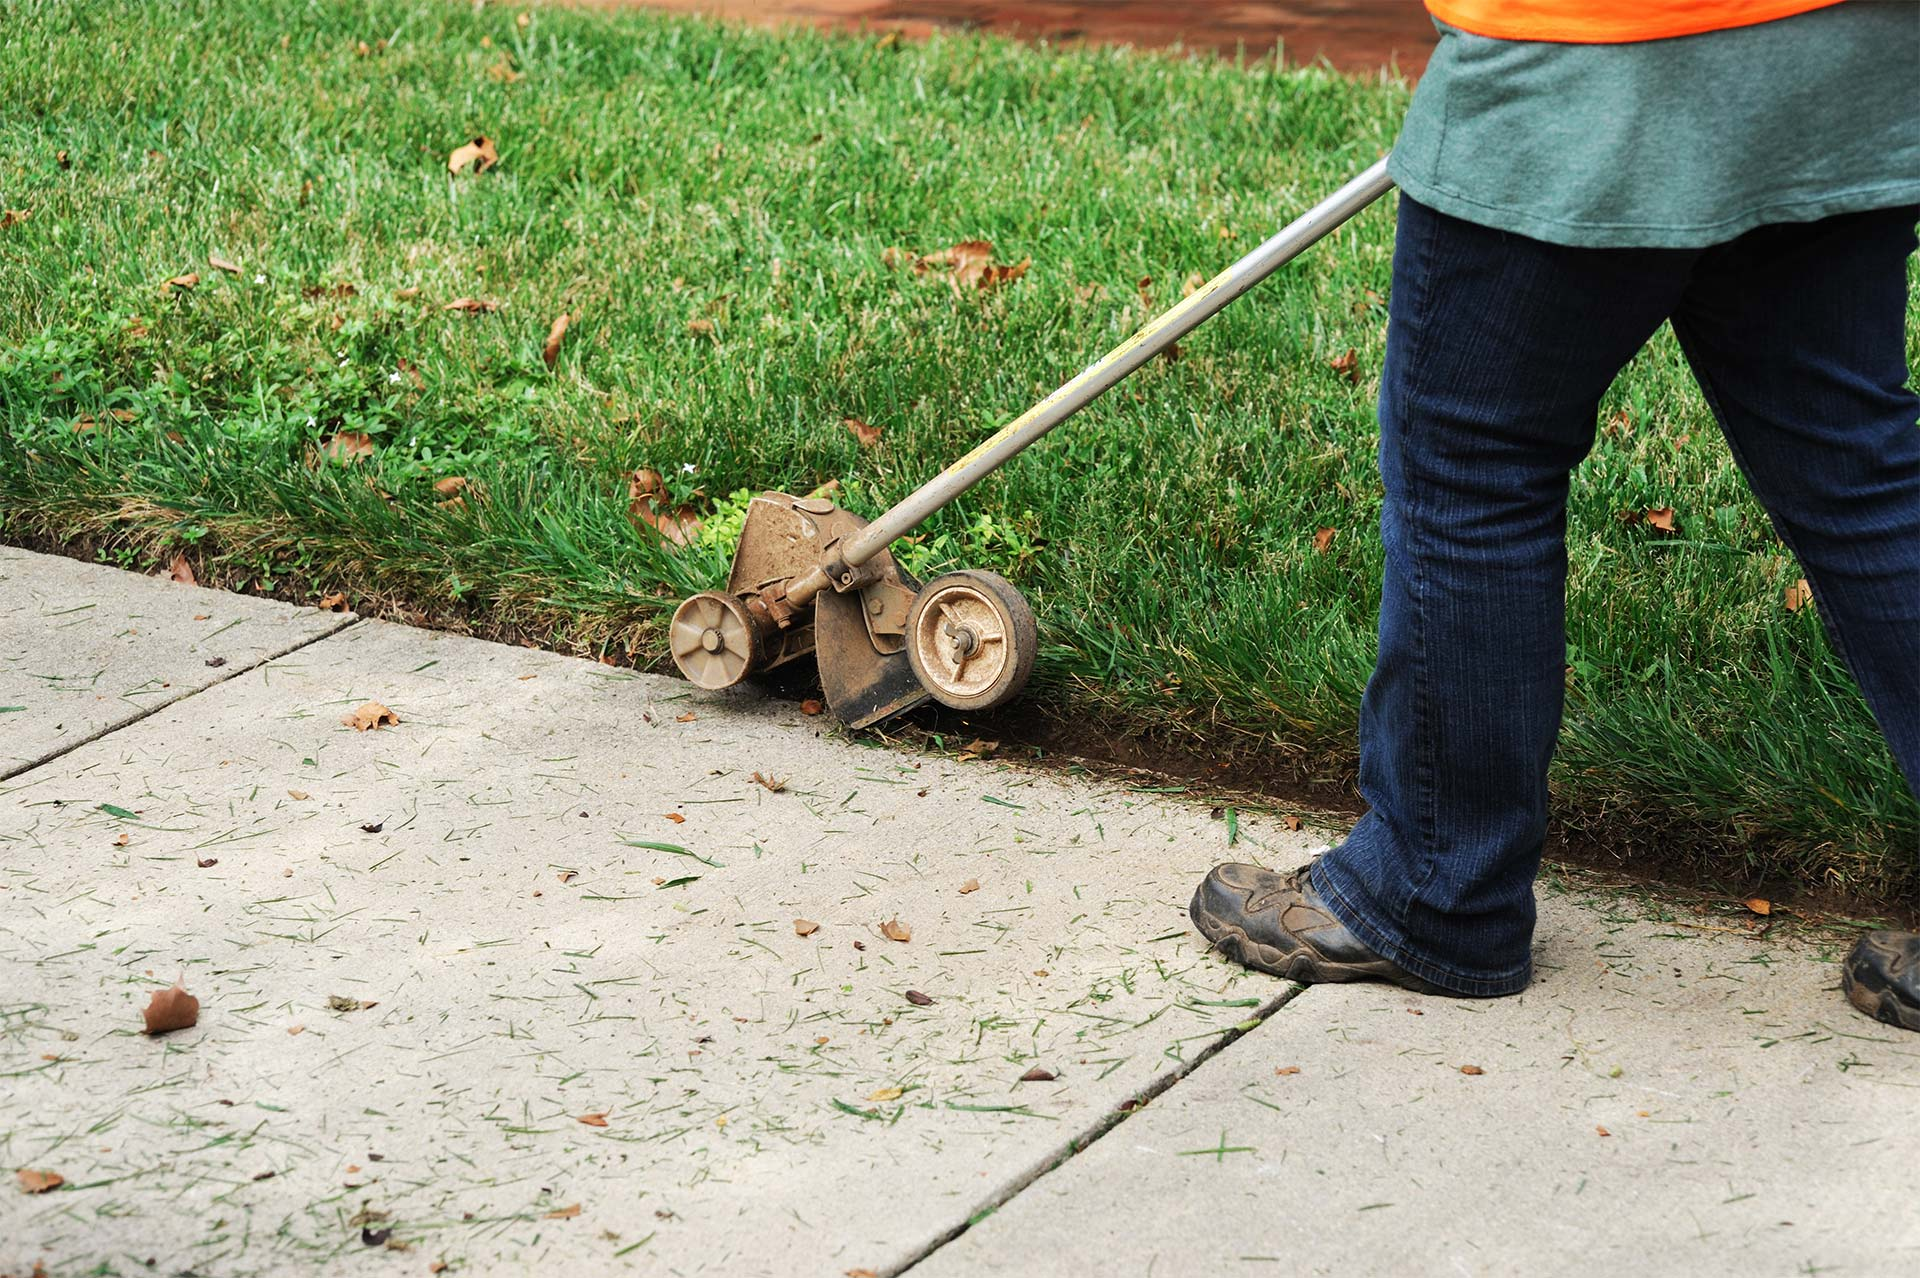 Edging lawn with lawn edger